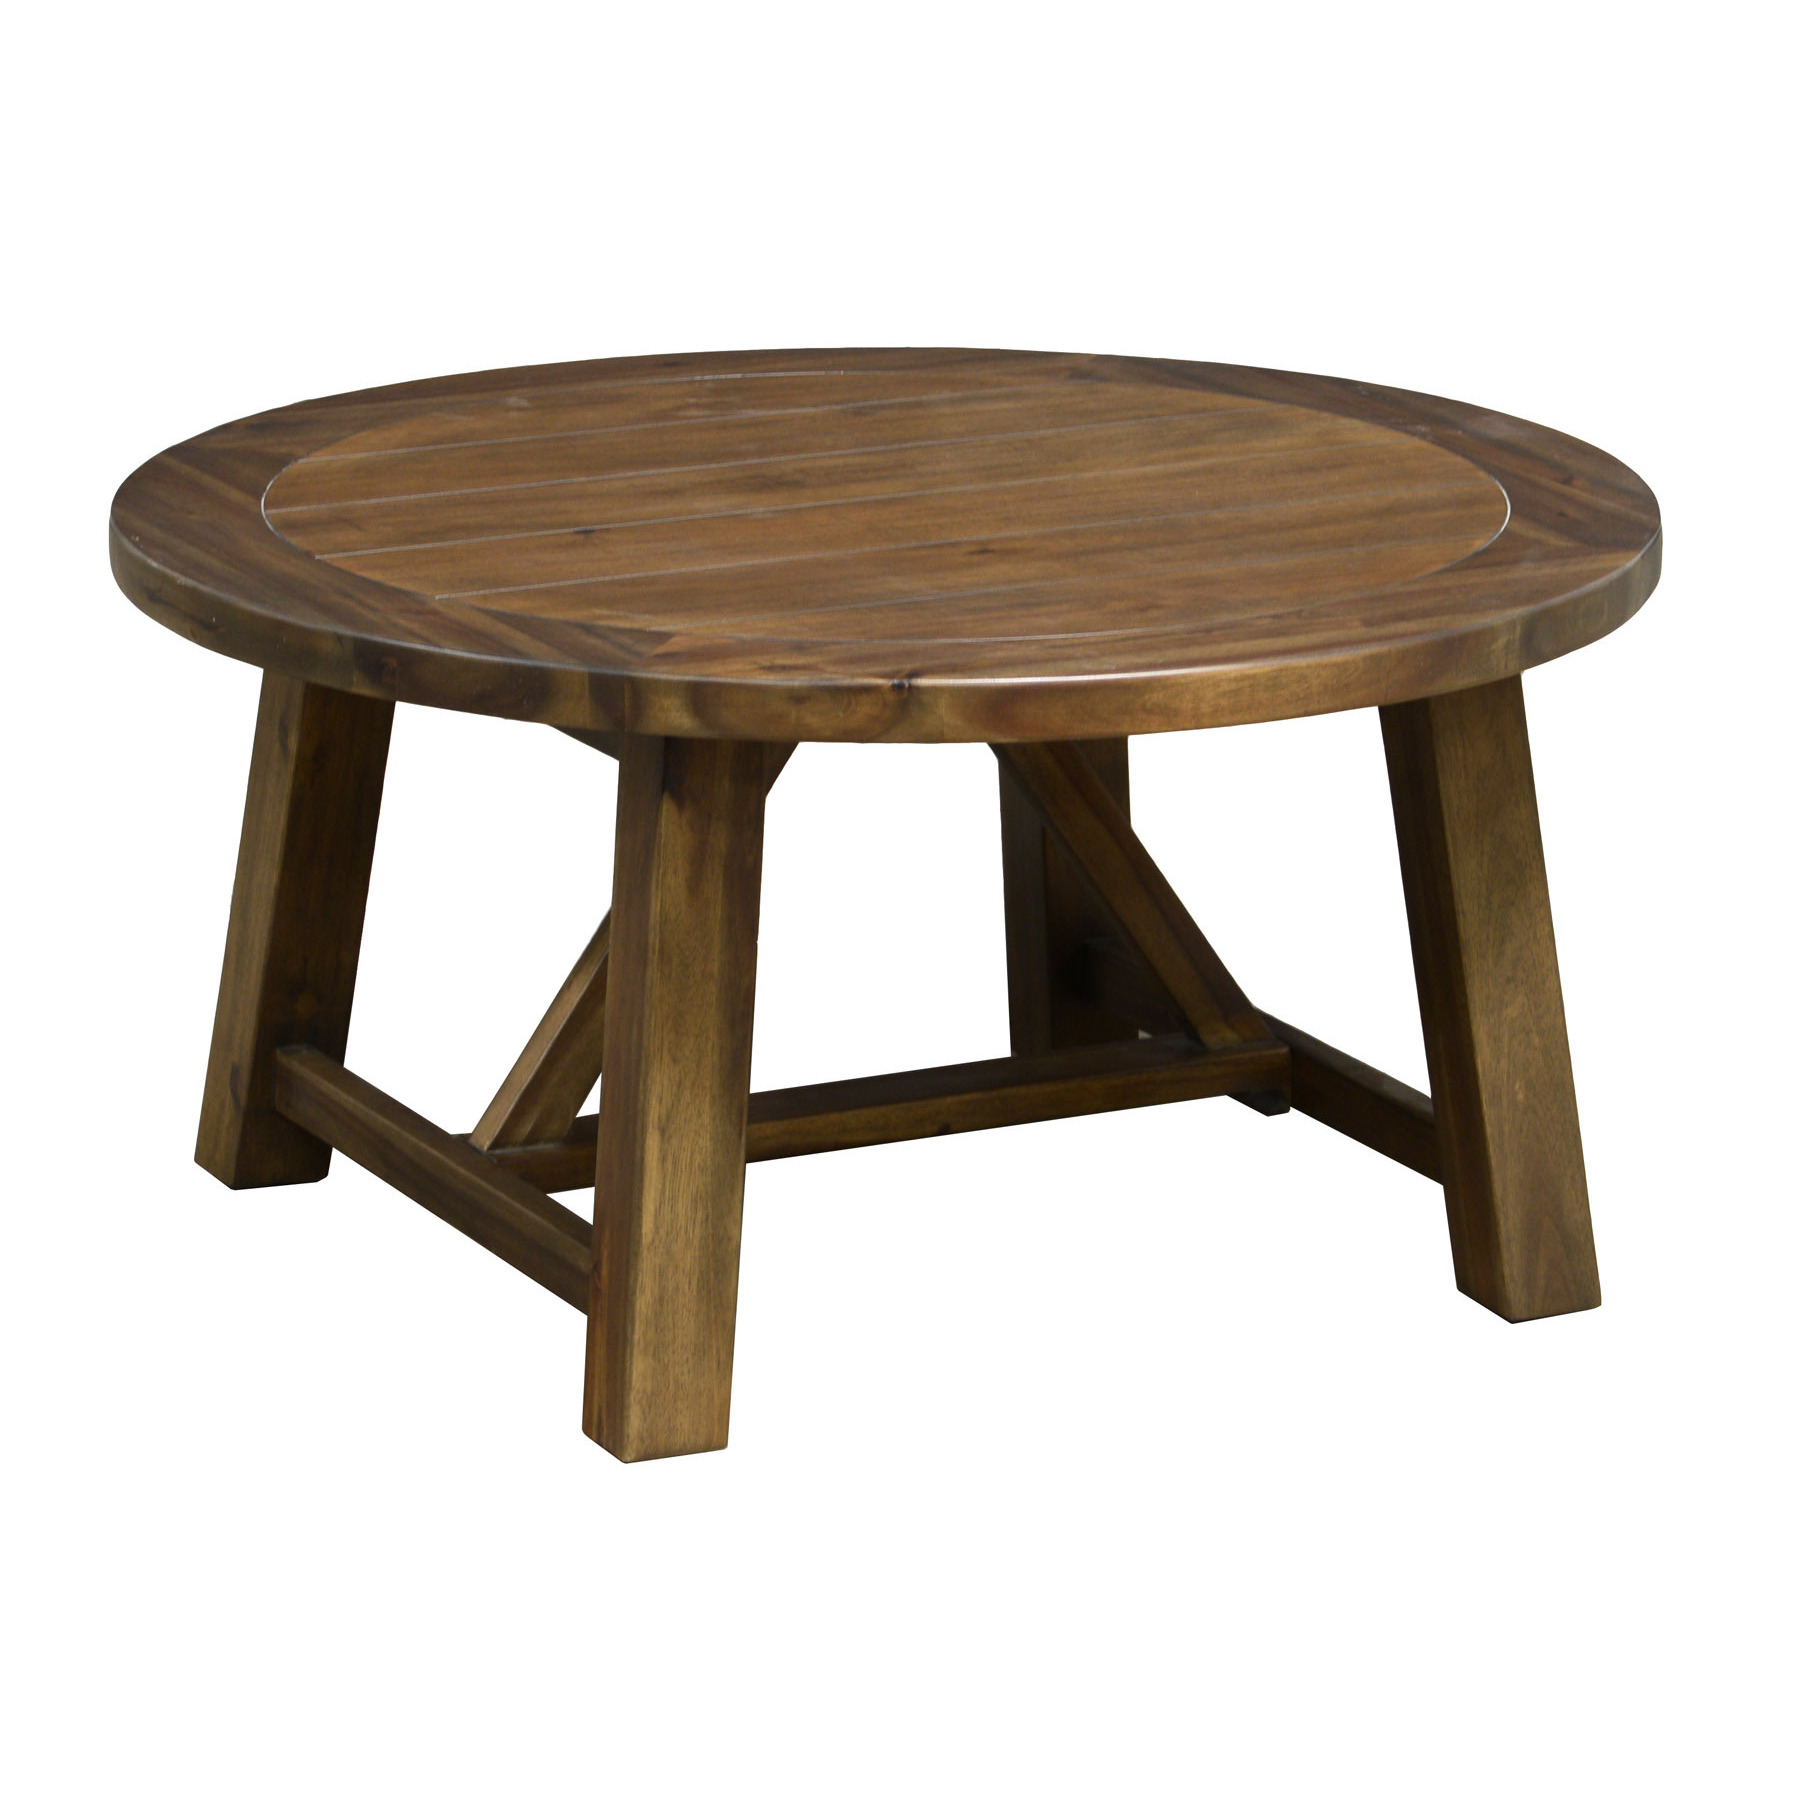 36 Round Coffee Table Wood